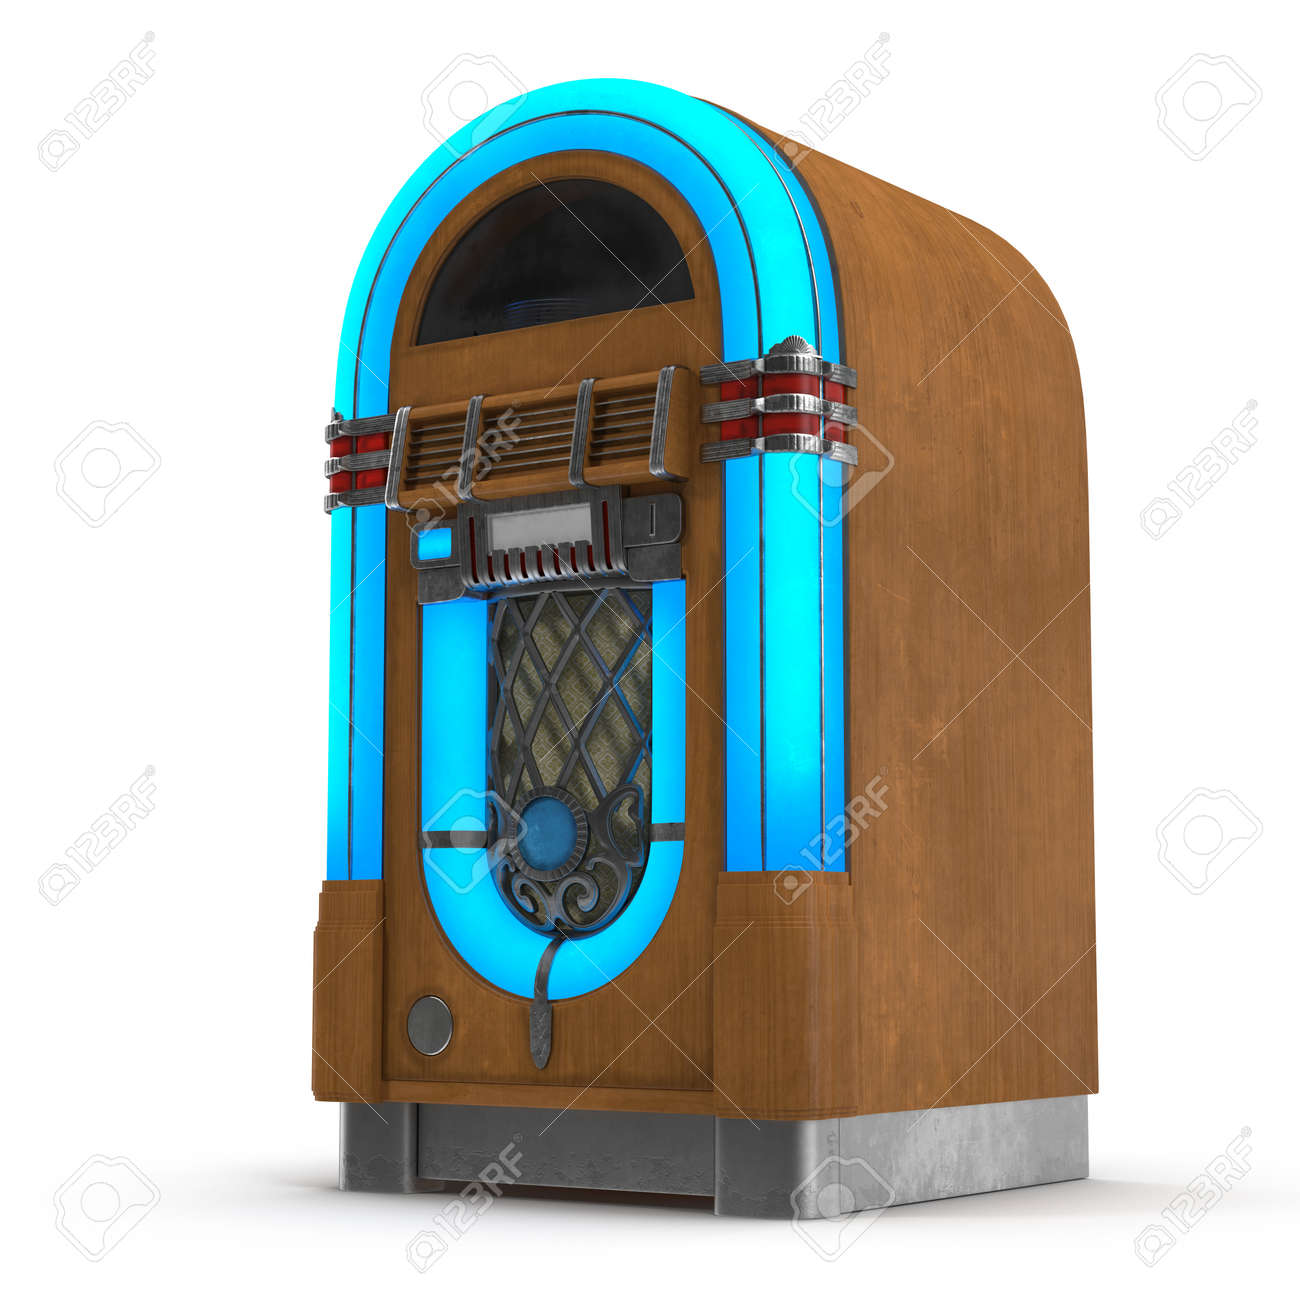 Old Jukebox Music Player Isolated On White Background 3D